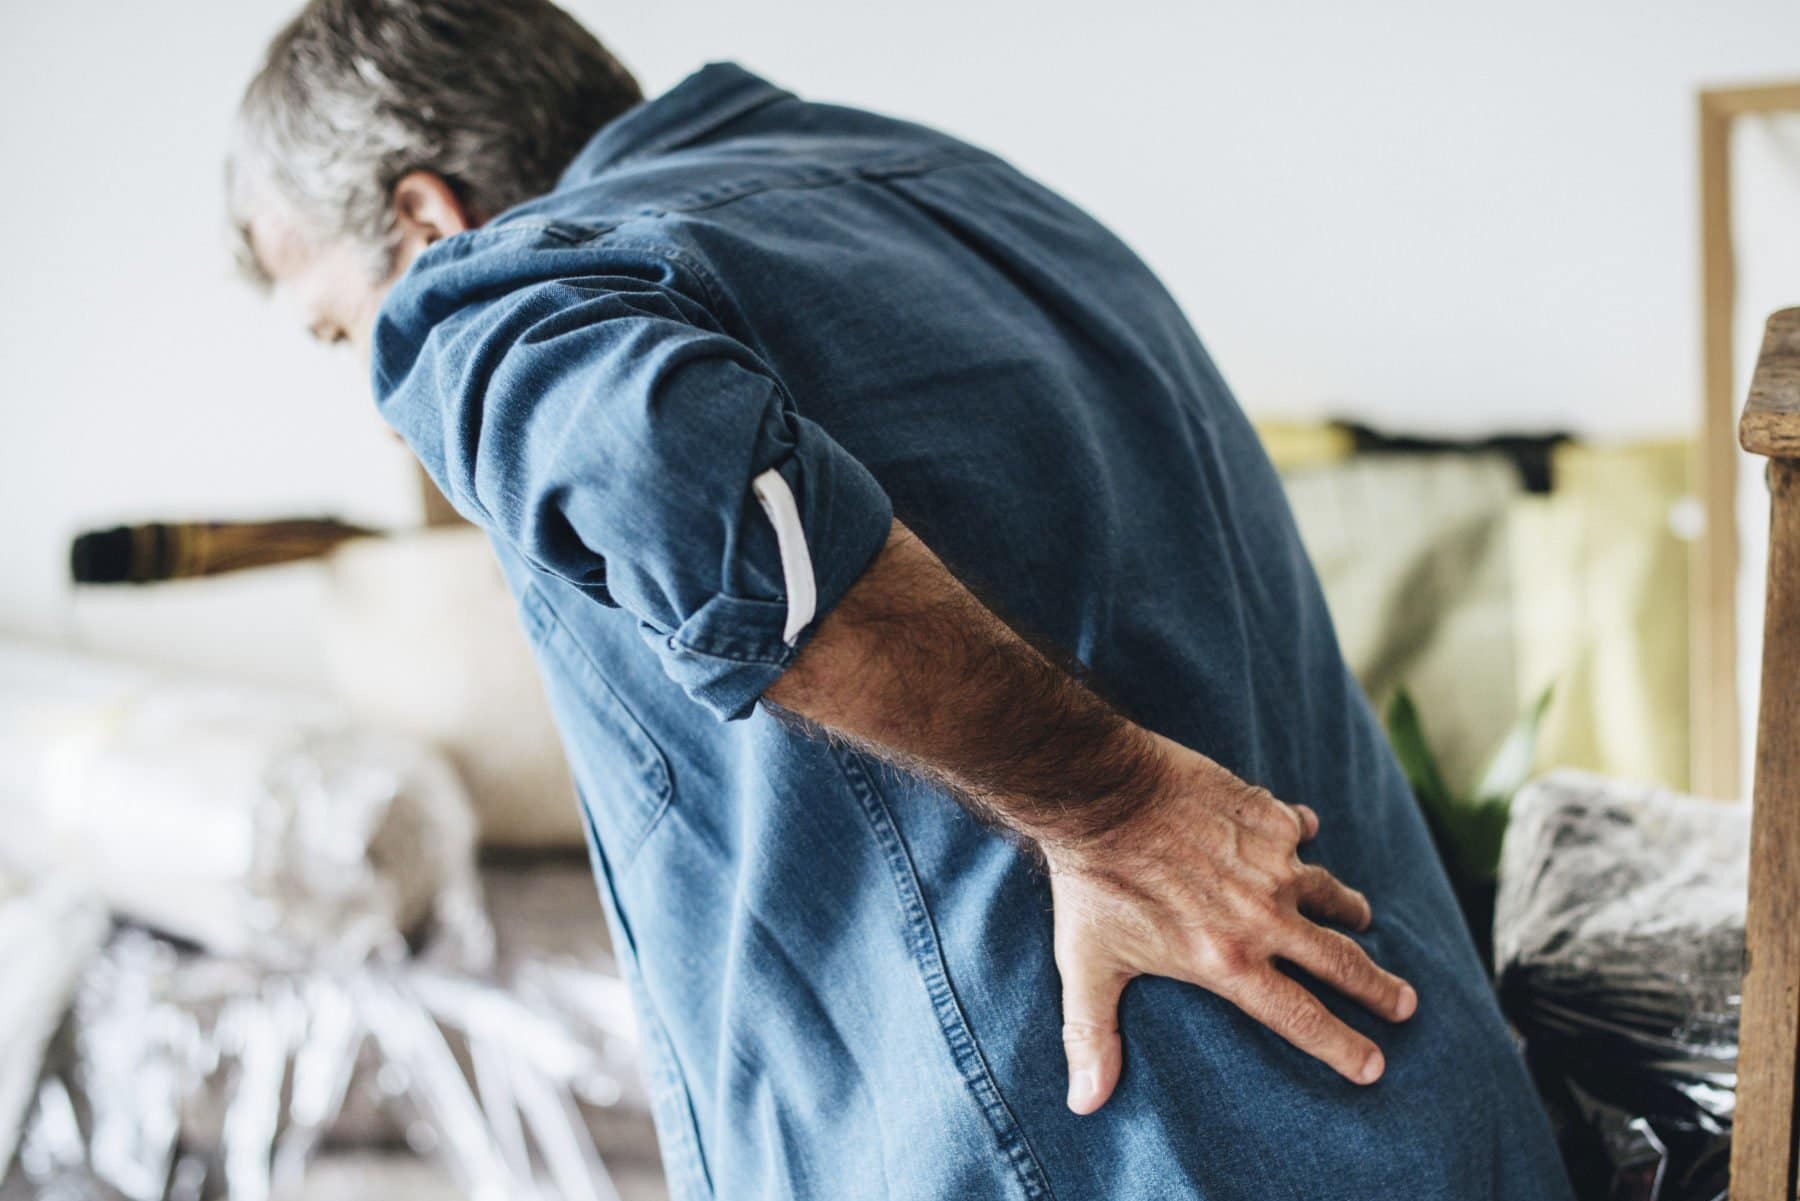 Conditions Treated: Chronic Pain